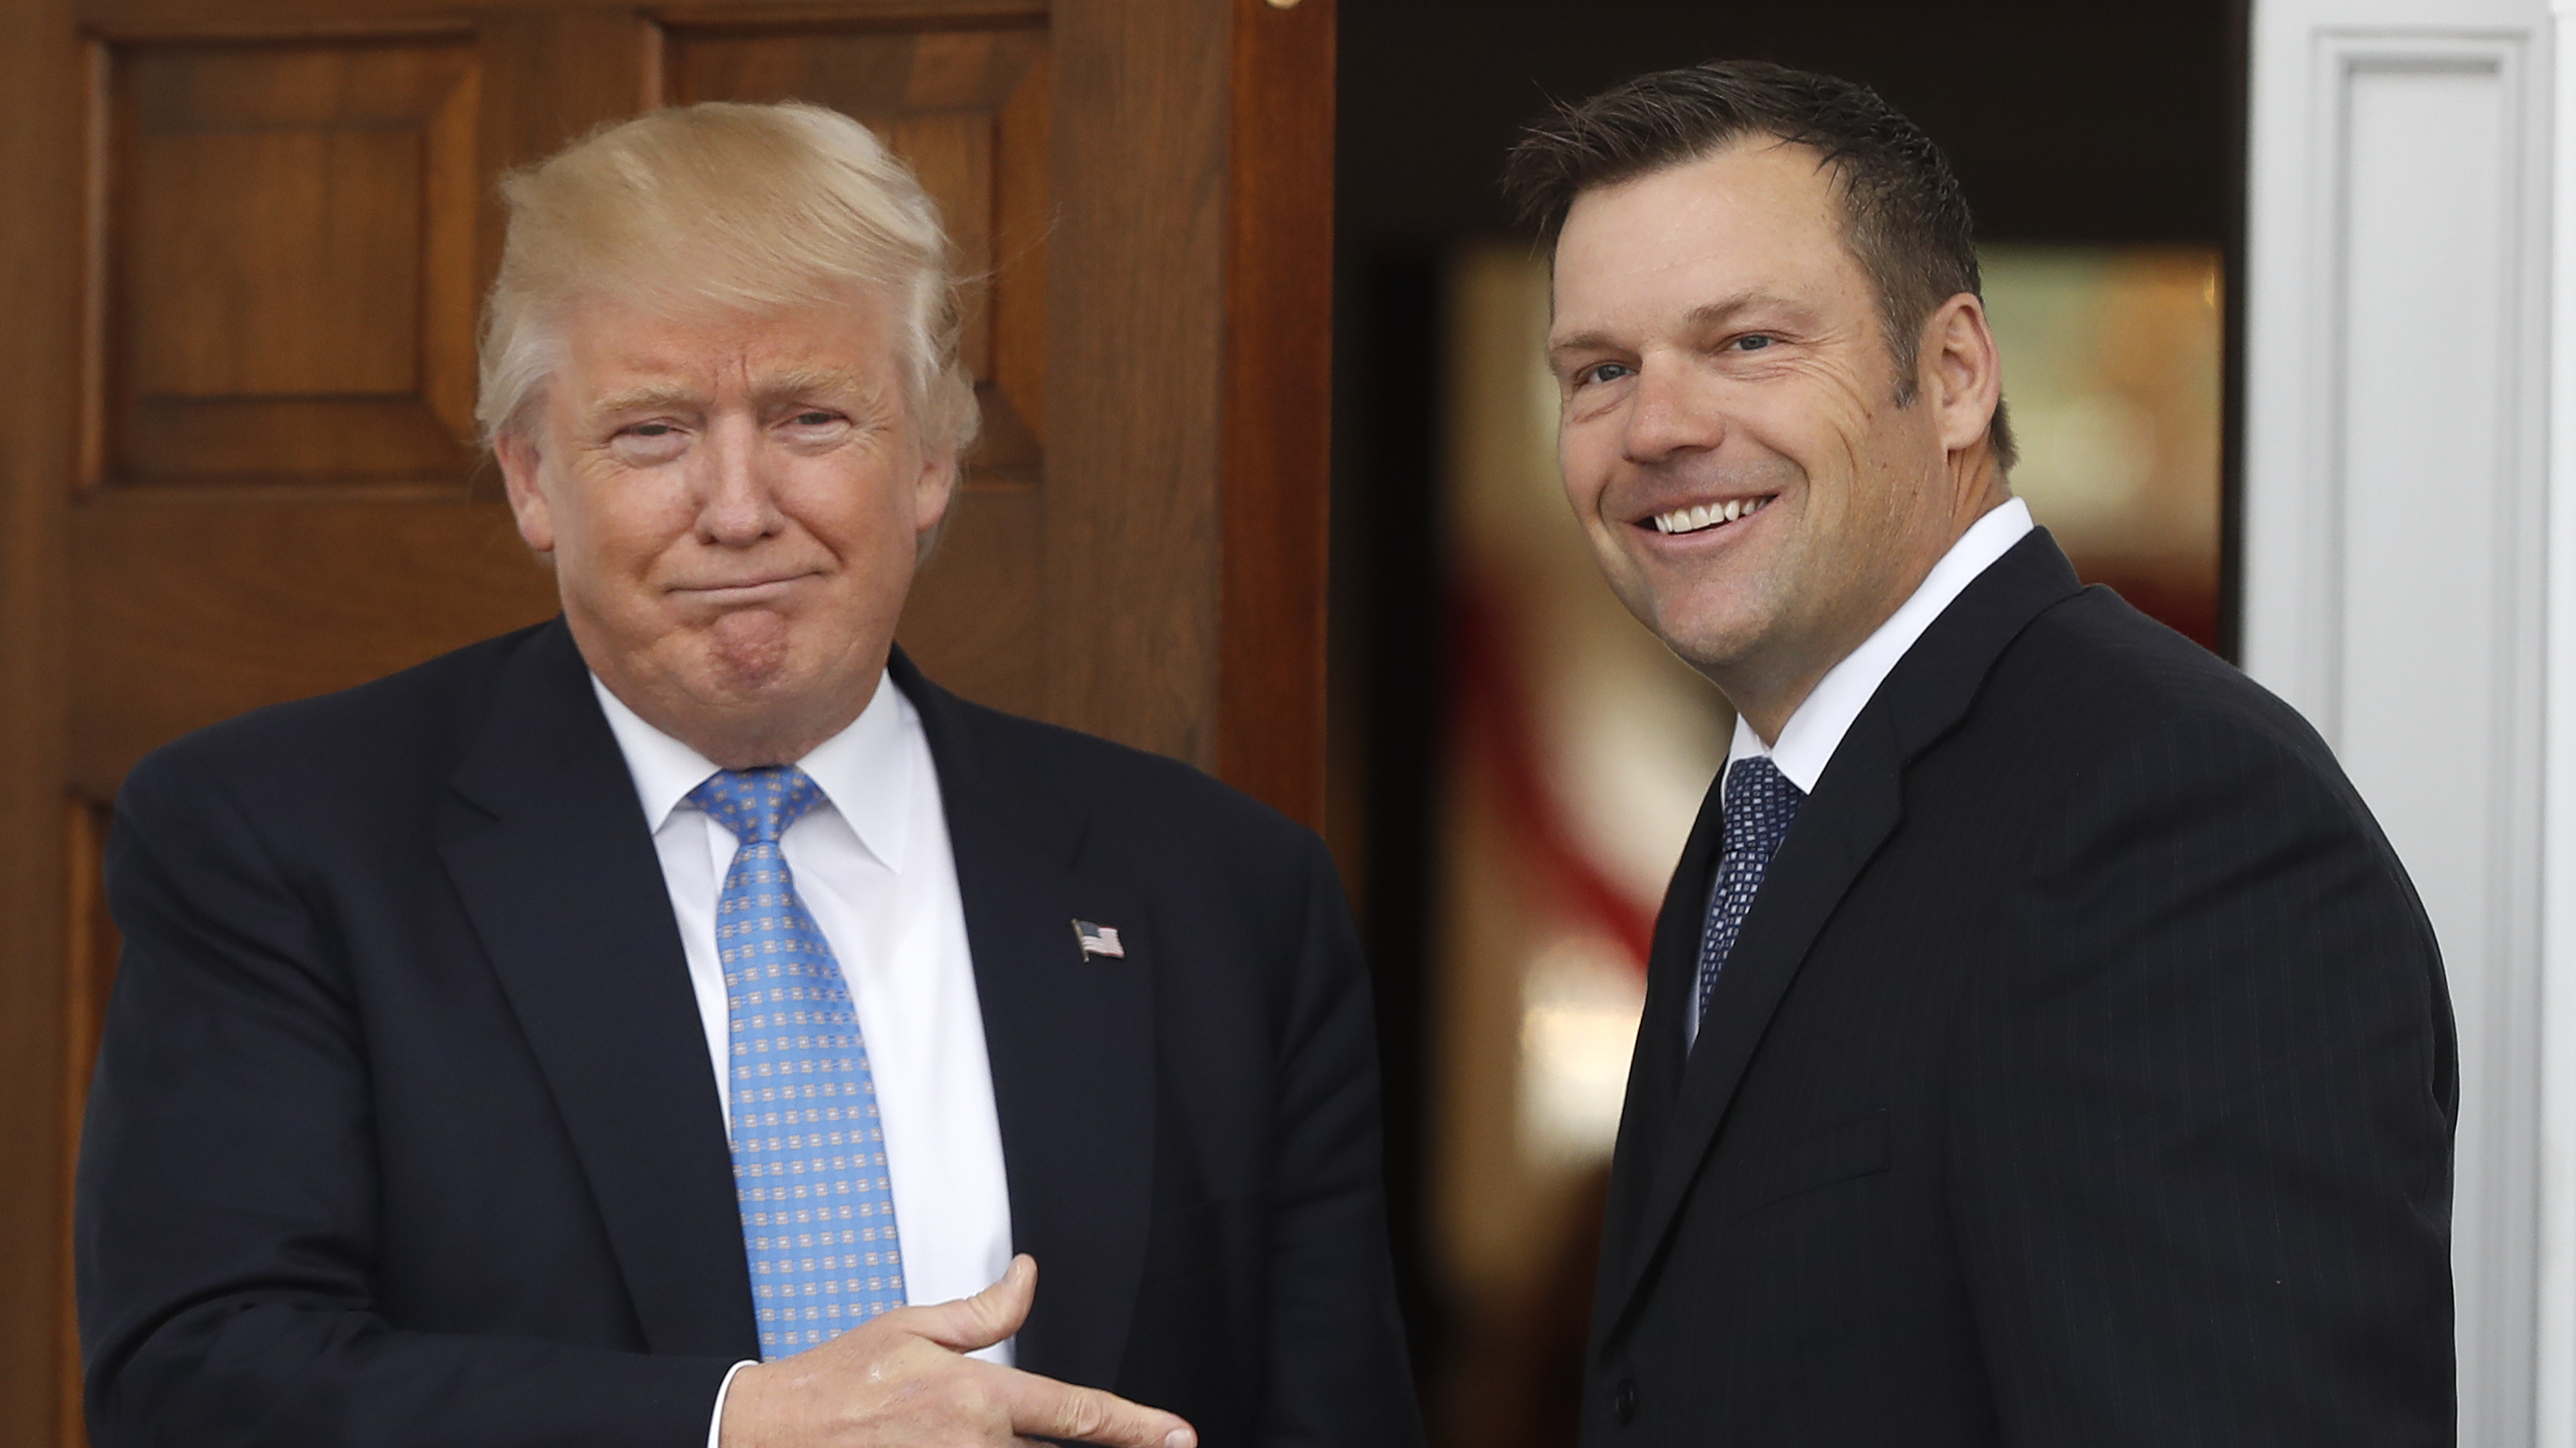 Kansas Secretary of State Kris Kobach and then-President-elect Donald Trump at the Trump National Golf Club in Bedminster, N.J., in November, 2016.